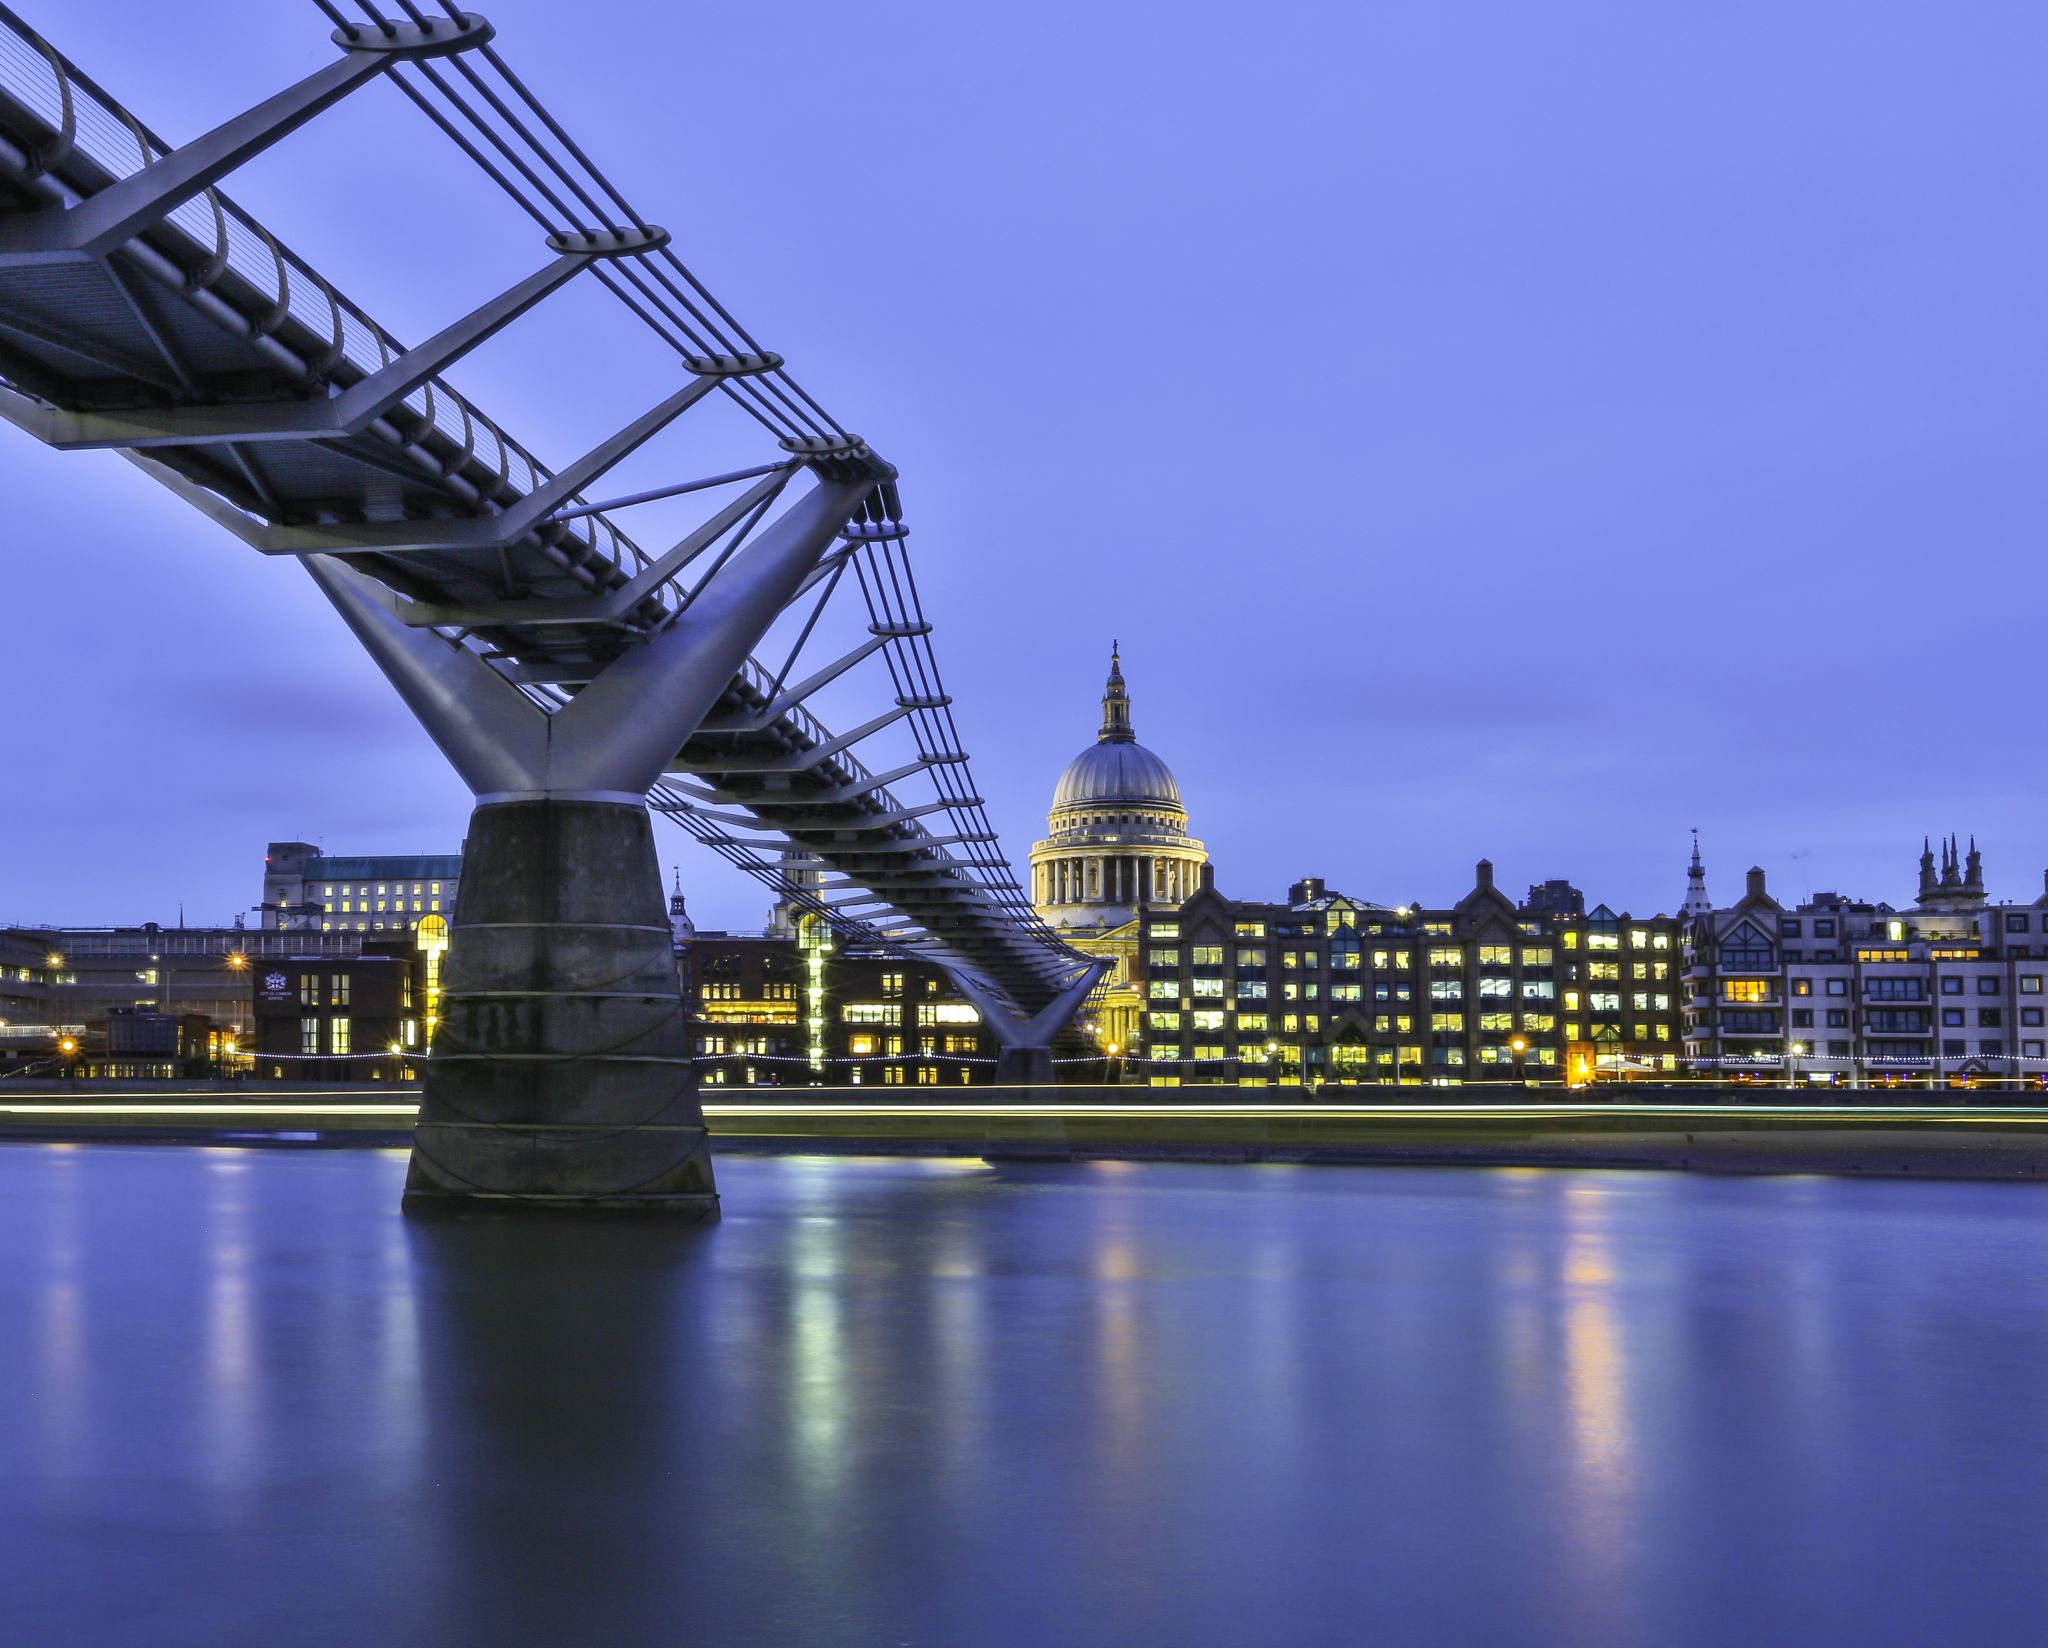 St Paul's Cathedral from under the Millennium Bridge, United Kingdom